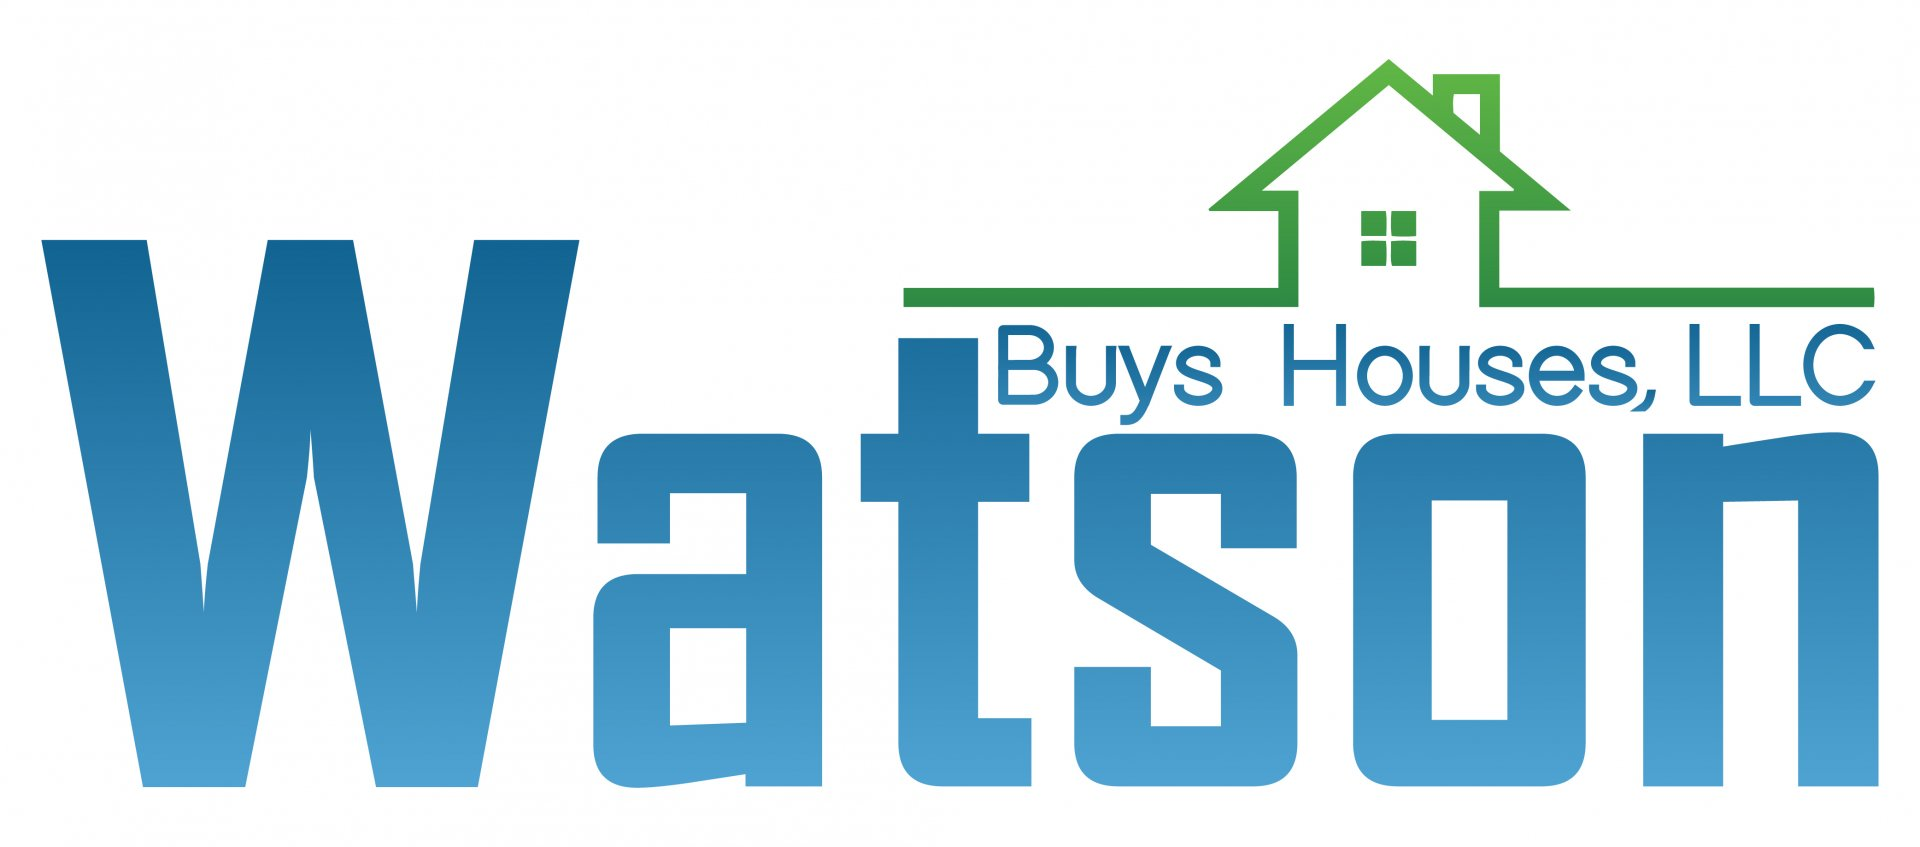 Sell Your House Fast logo